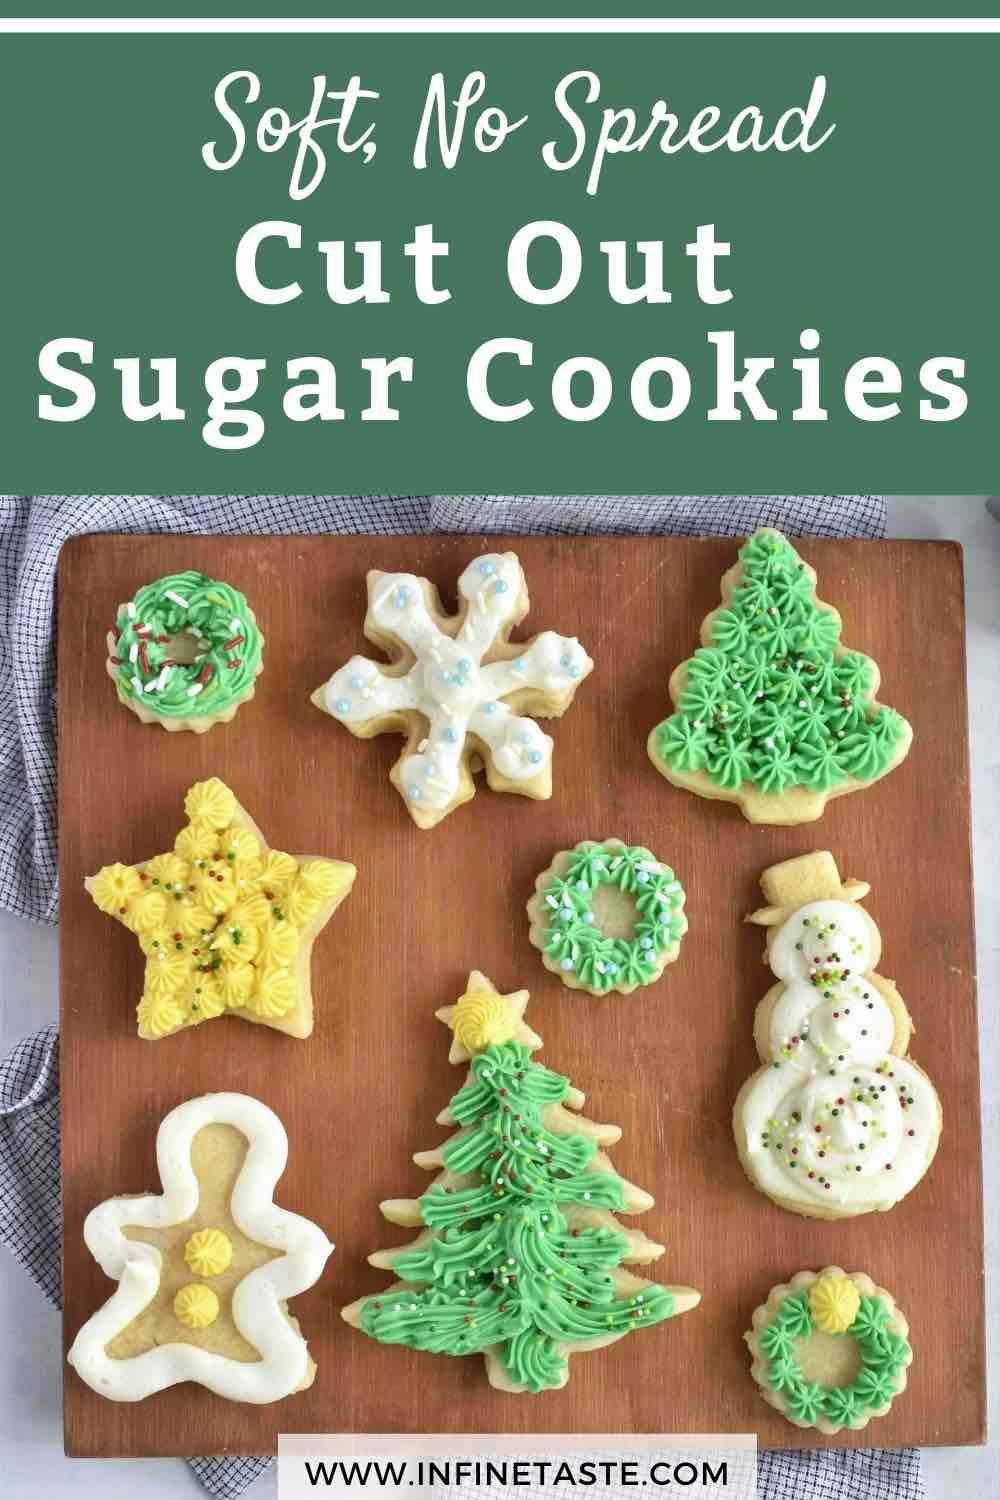 Soft, no spread cut out sugar cookie recipe with my favorite buttercream frosting! These soft cream cheese sugar cookies hold their shape perfectly when baked! #ChirstmasDessertsEasy #EasyChristmasDesserts #ChristmasCookies #ChristmasCookiesRecipes #CookiesRecipesChristmas #EasyChristmasCookies #CreamCheeseSugarCookies #EasySugarCookies #SugarCookieRecipes #SugarCookieRecipeEasy #FrostedSugarCookie #BestSugarCookieRecipes #SoftSugarCookies #SugarCookieIcingRecipe #Cutoutsugarcookies